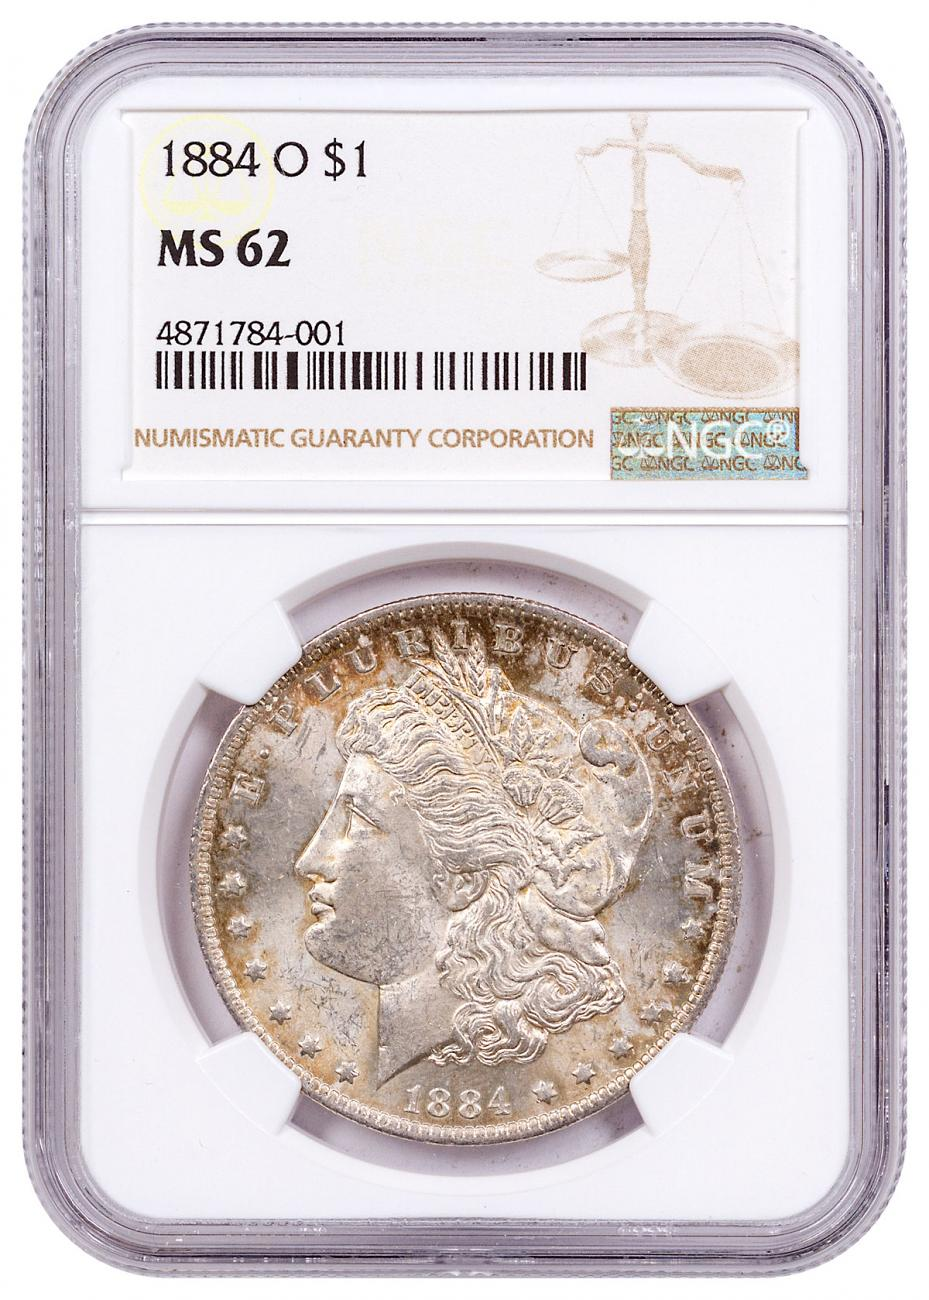 1884-O Morgan Silver Dollar Toned NGC MS62 CPCR 4001